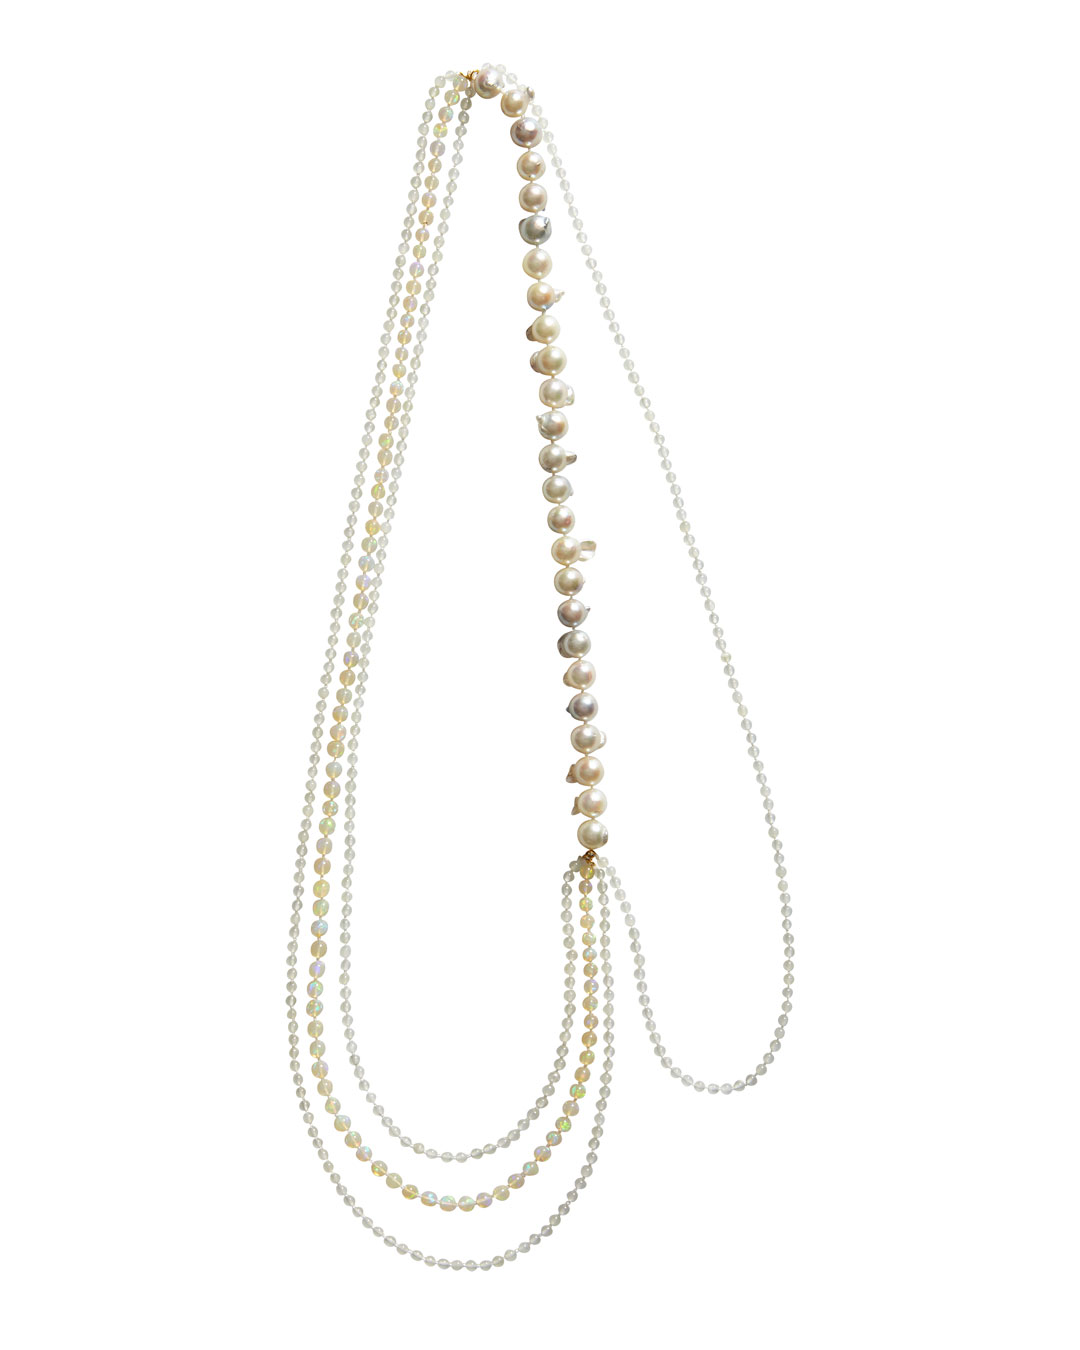 Annelies Planteijdt, Mooie stad - Parelend water (Beautiful City - Pearling Water), 2020, necklace; Akoya pearls, Welo opal, jade, gold, yarn, 700 mm, €3275